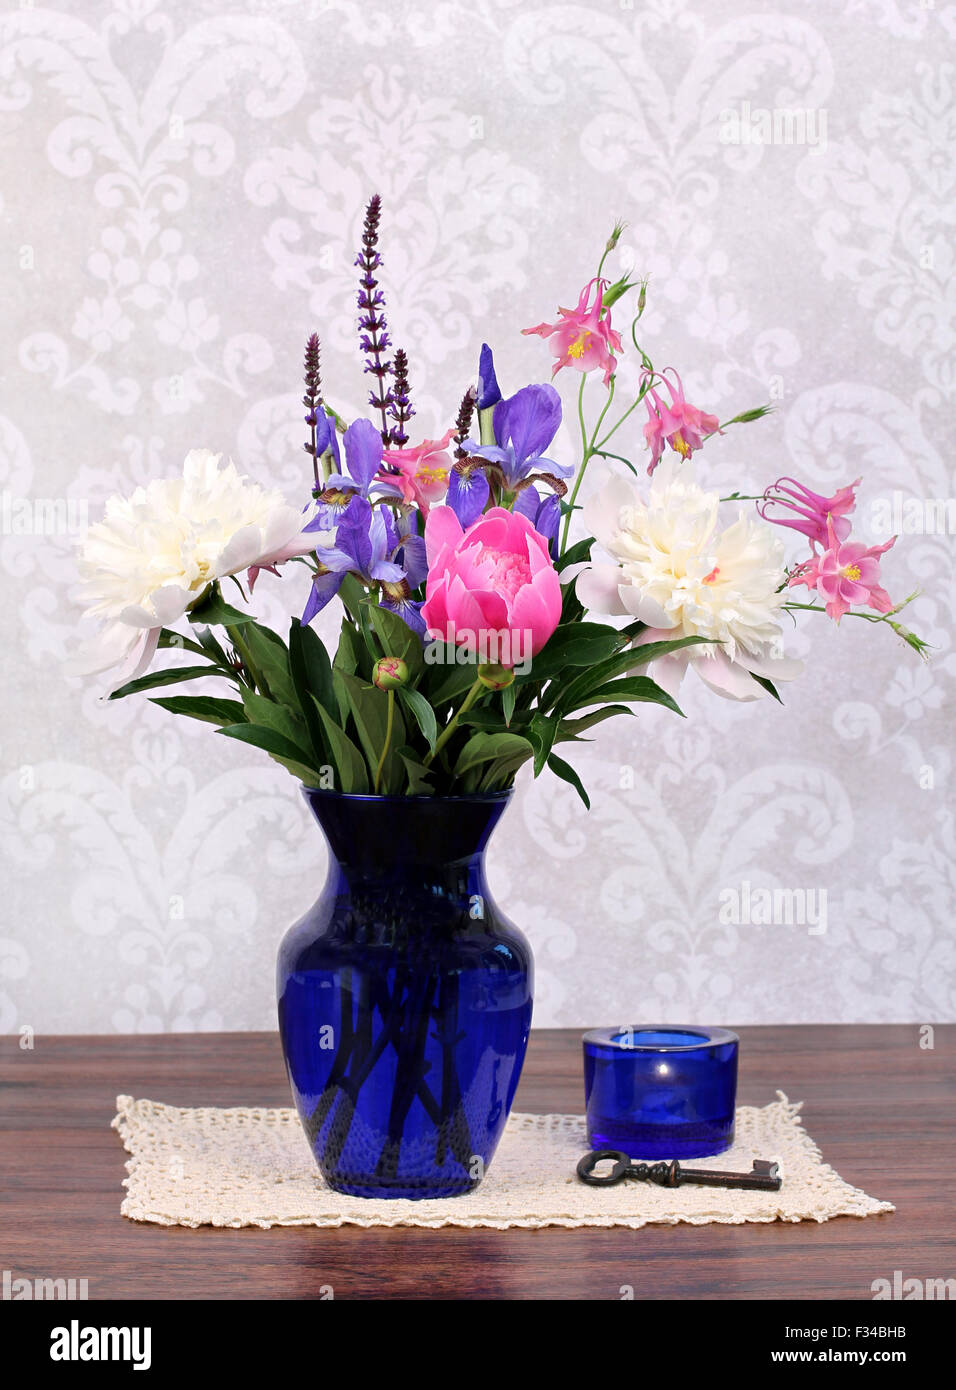 An assortment of typical and beautiful spring flowers in a navy vase an assortment of typical and beautiful spring flowers in a navy vase stock photo 87992727 alamy izmirmasajfo Choice Image